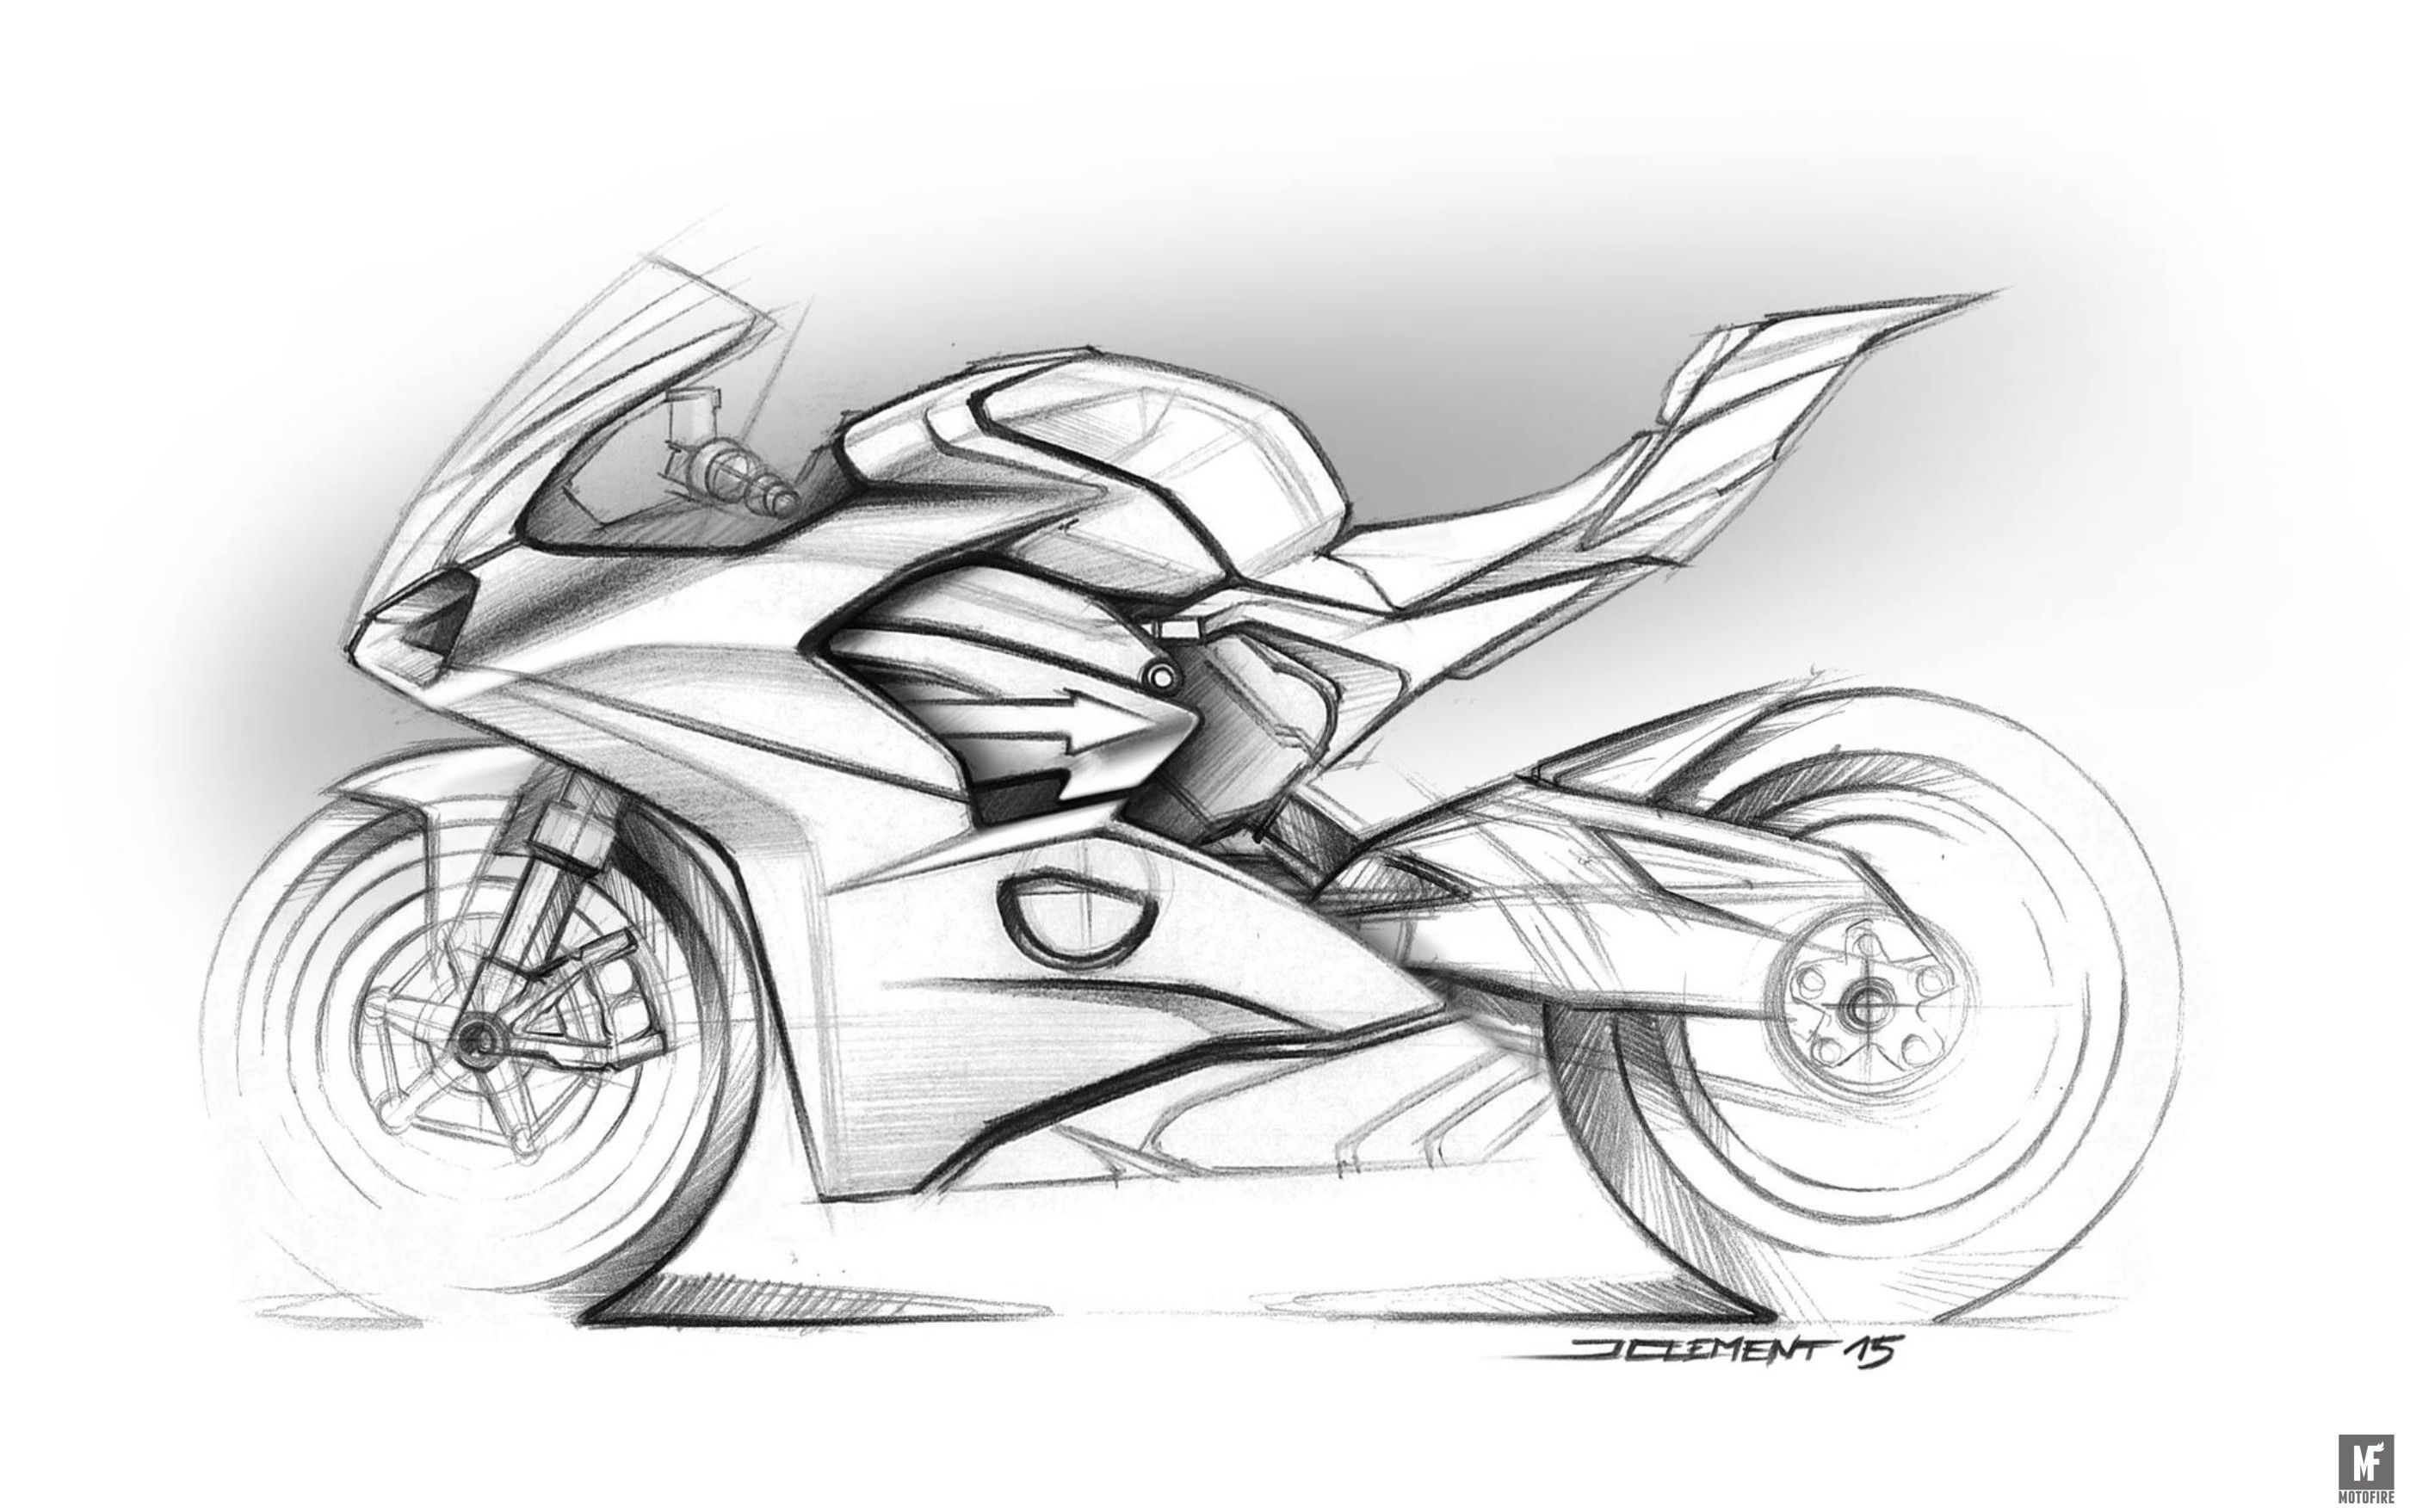 The Design Sketches For The Ducati Panigale V4 Are Stunning